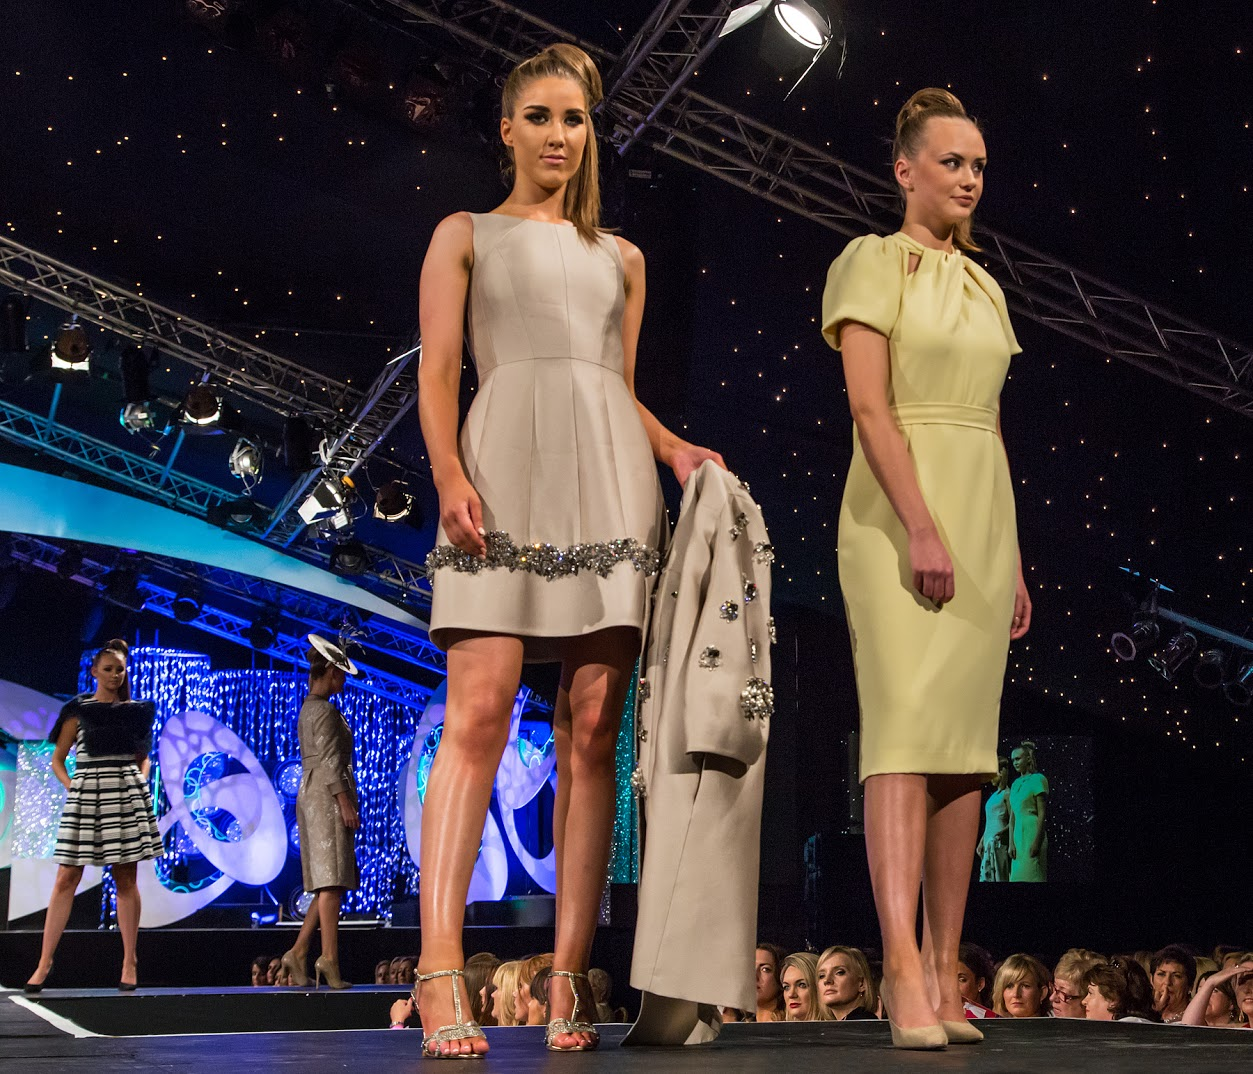 dolf_patijn_rose_of_tralee_fashion_16082015_0430